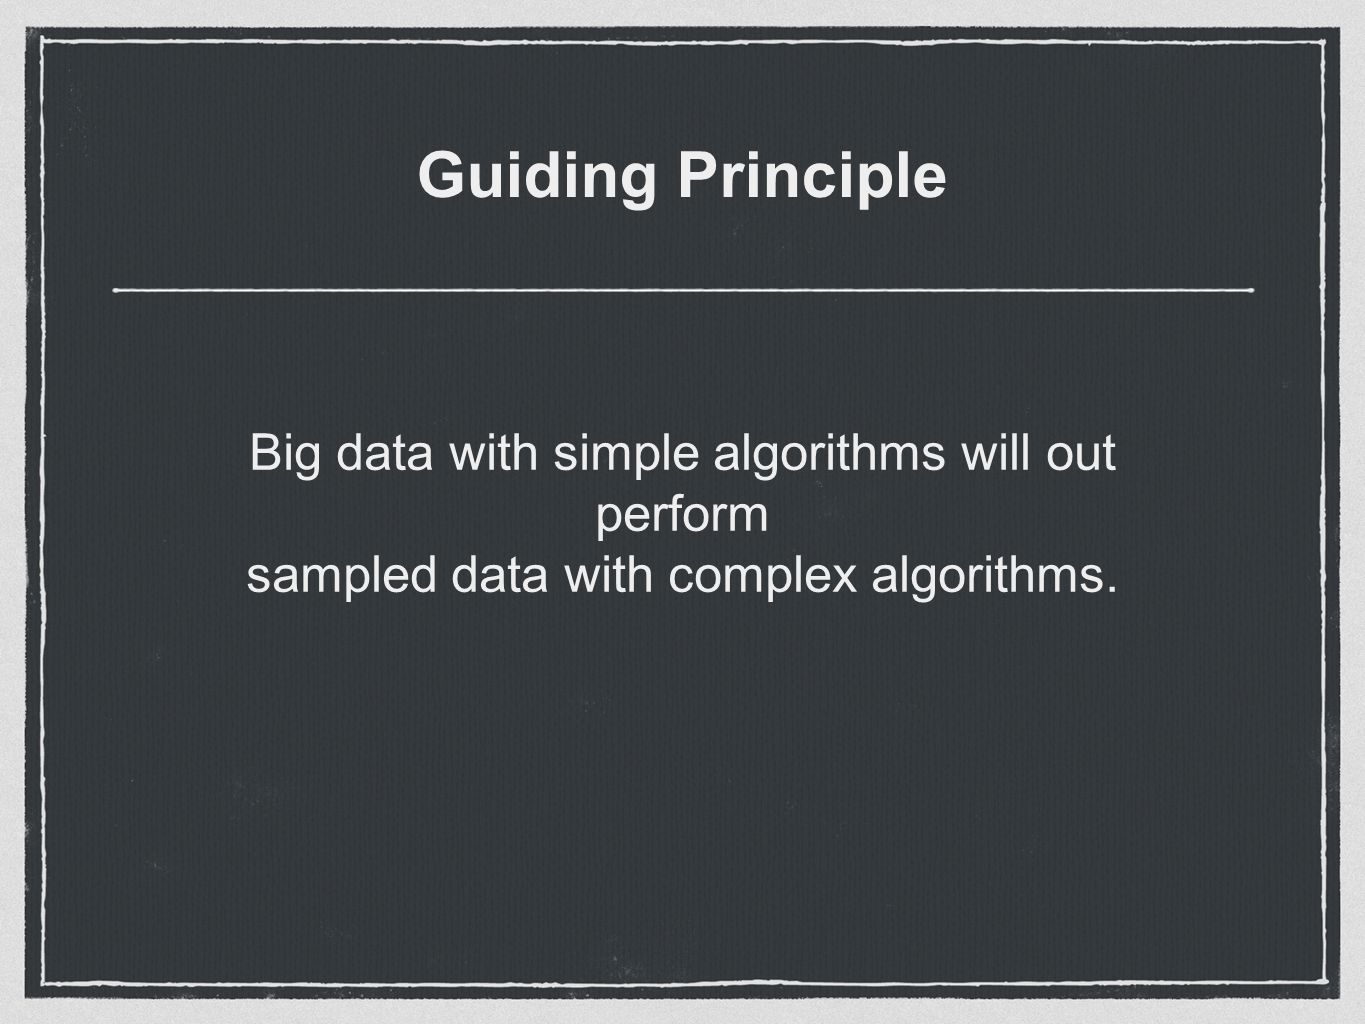 Guiding Principle Big data with simple algorithms will out perform sampled data with complex algorithms.